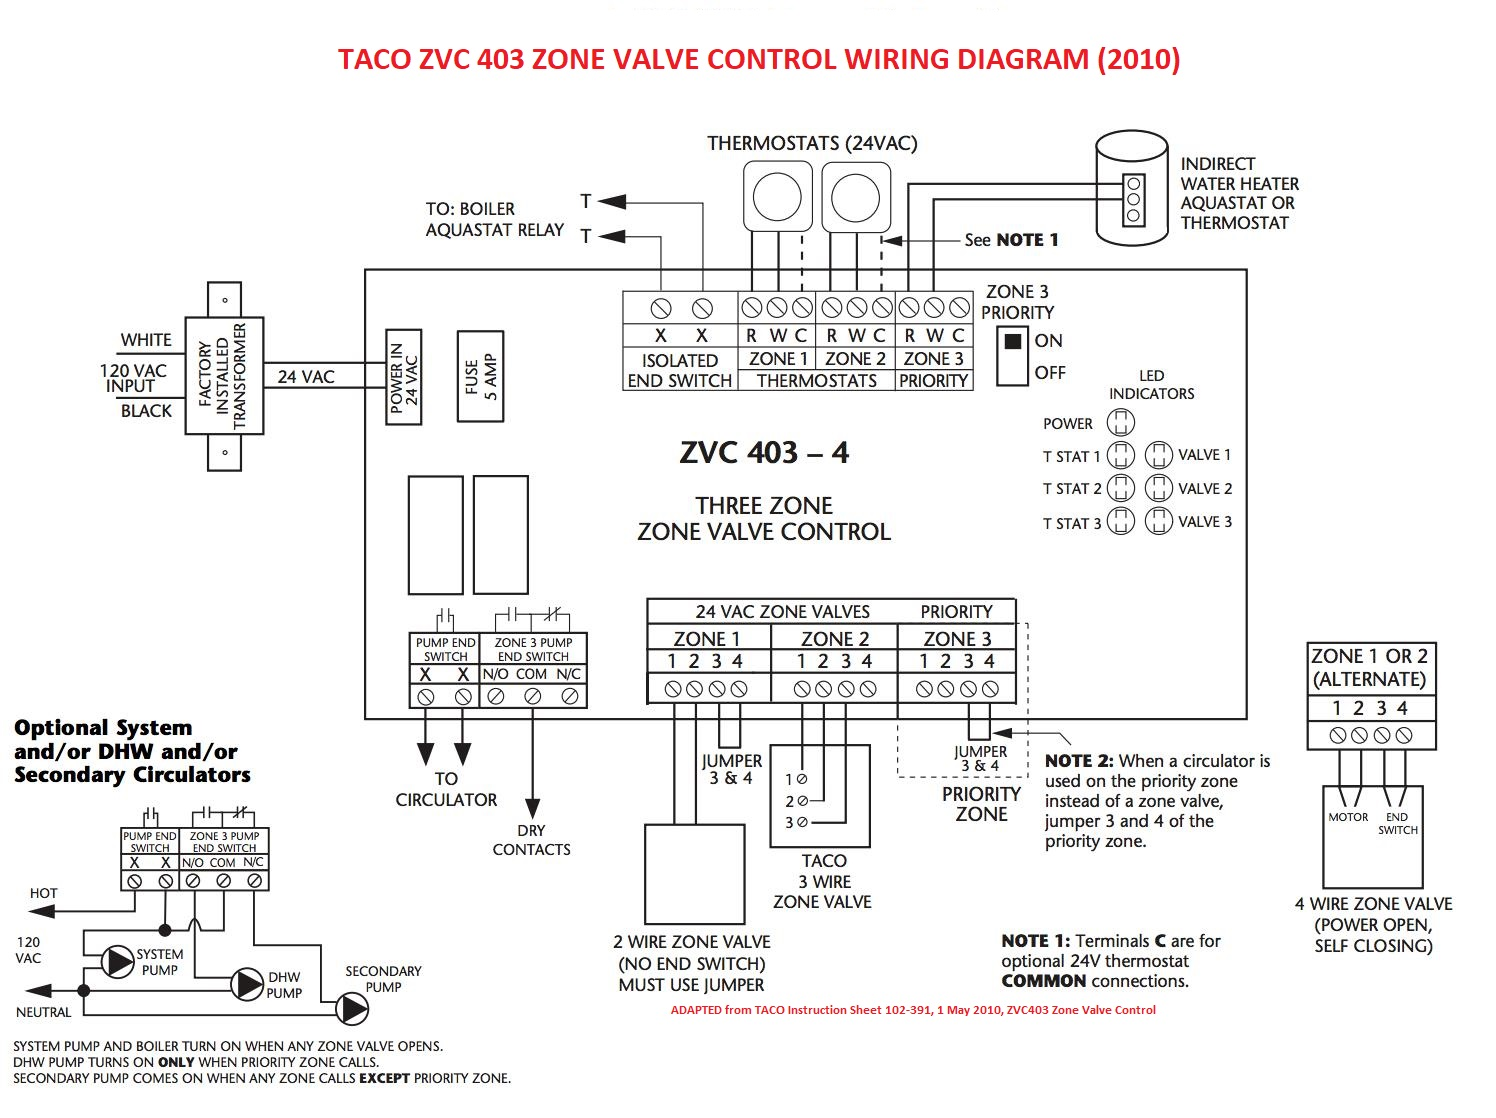 northern electric radiator fan wiring diagram wiring library  northern electric radiator fan wiring diagram #4